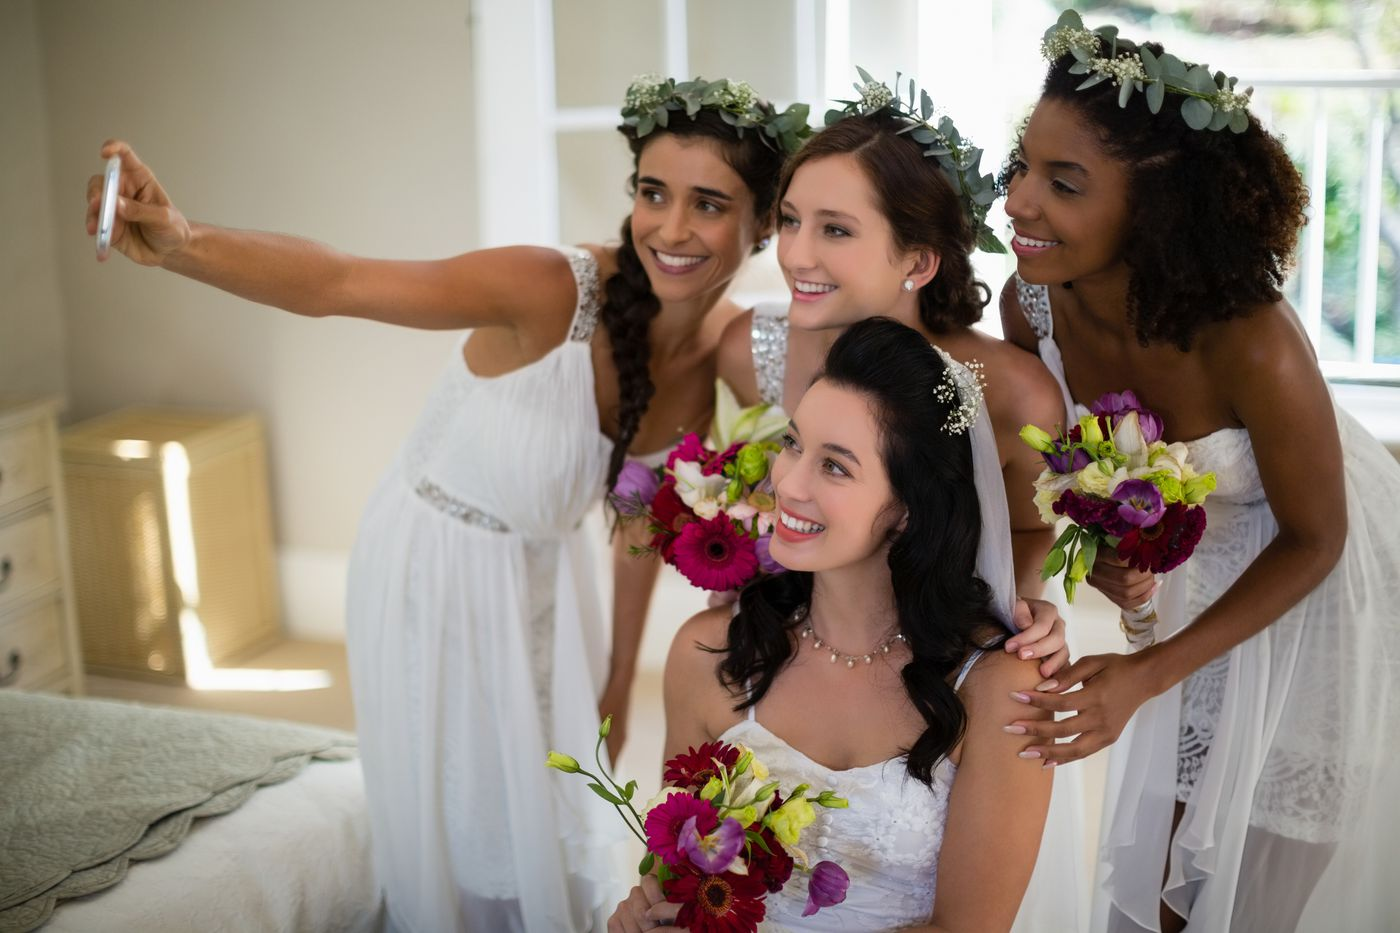 Matching T-shirts, hikes in Colombia, custom Snapchat filters: The changing standards of the wedding industrial complex